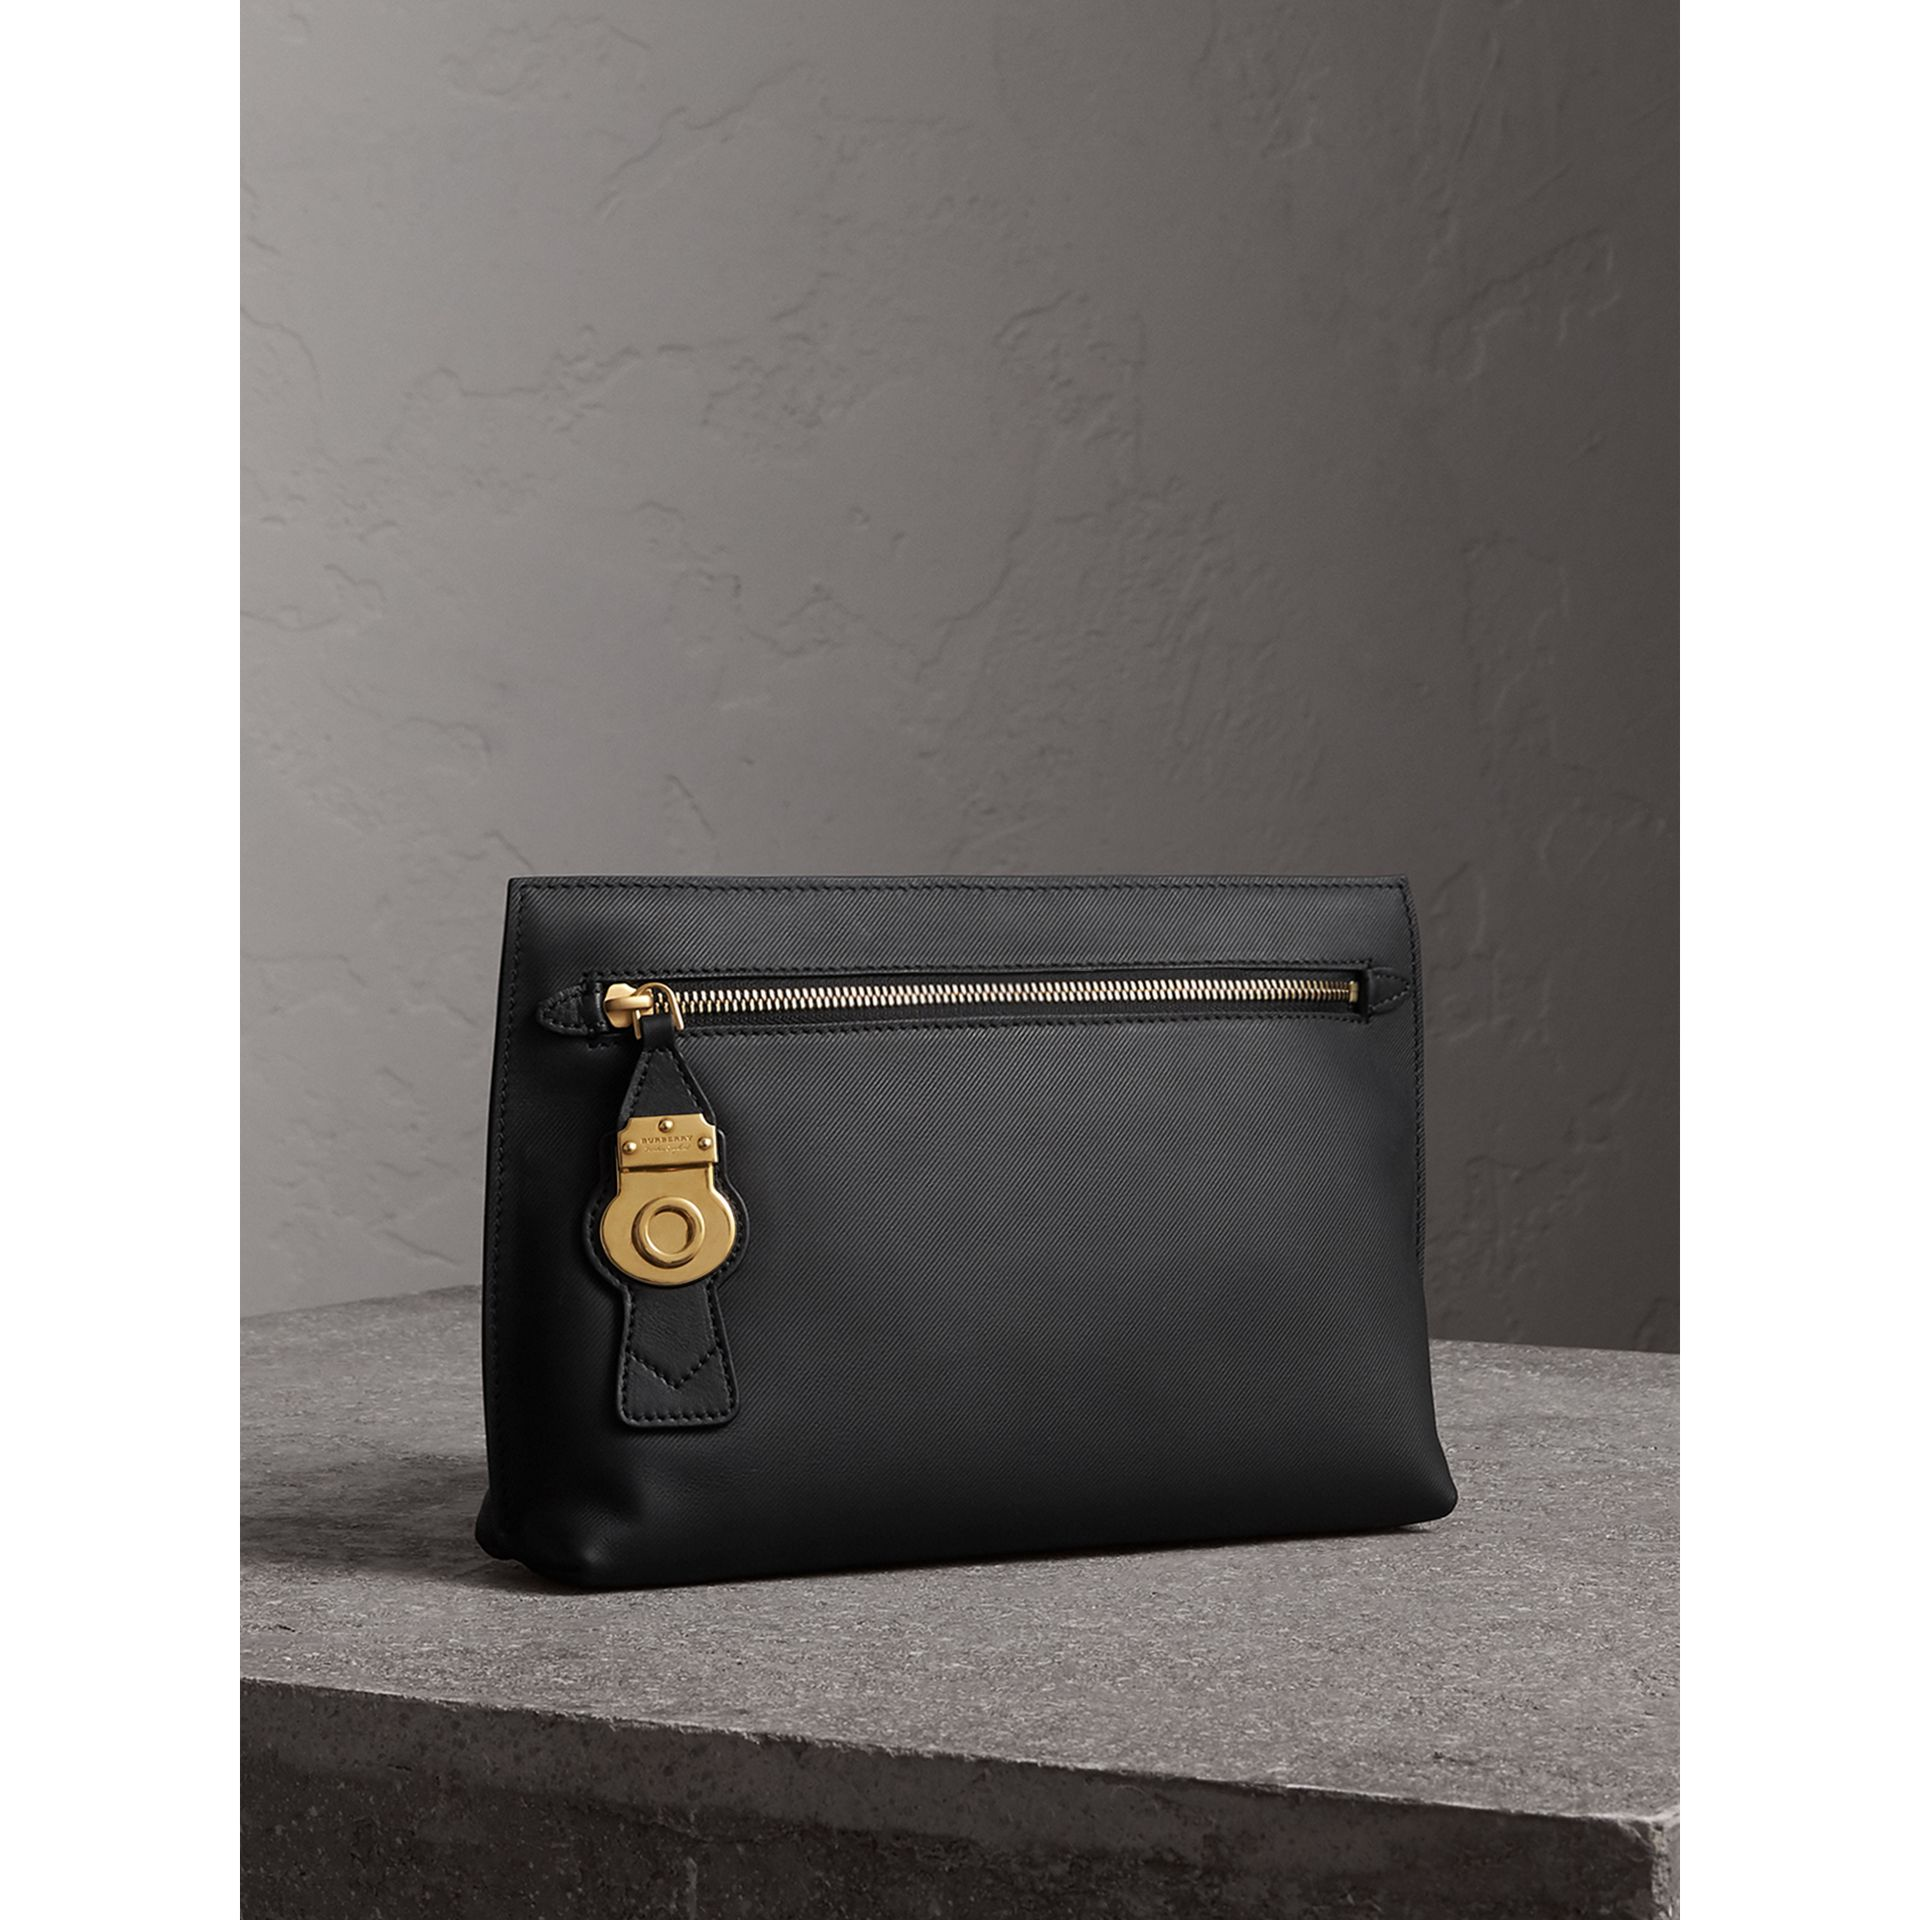 Trench Leather Wristlet Pouch in Black - Women | Burberry Australia - gallery image 6